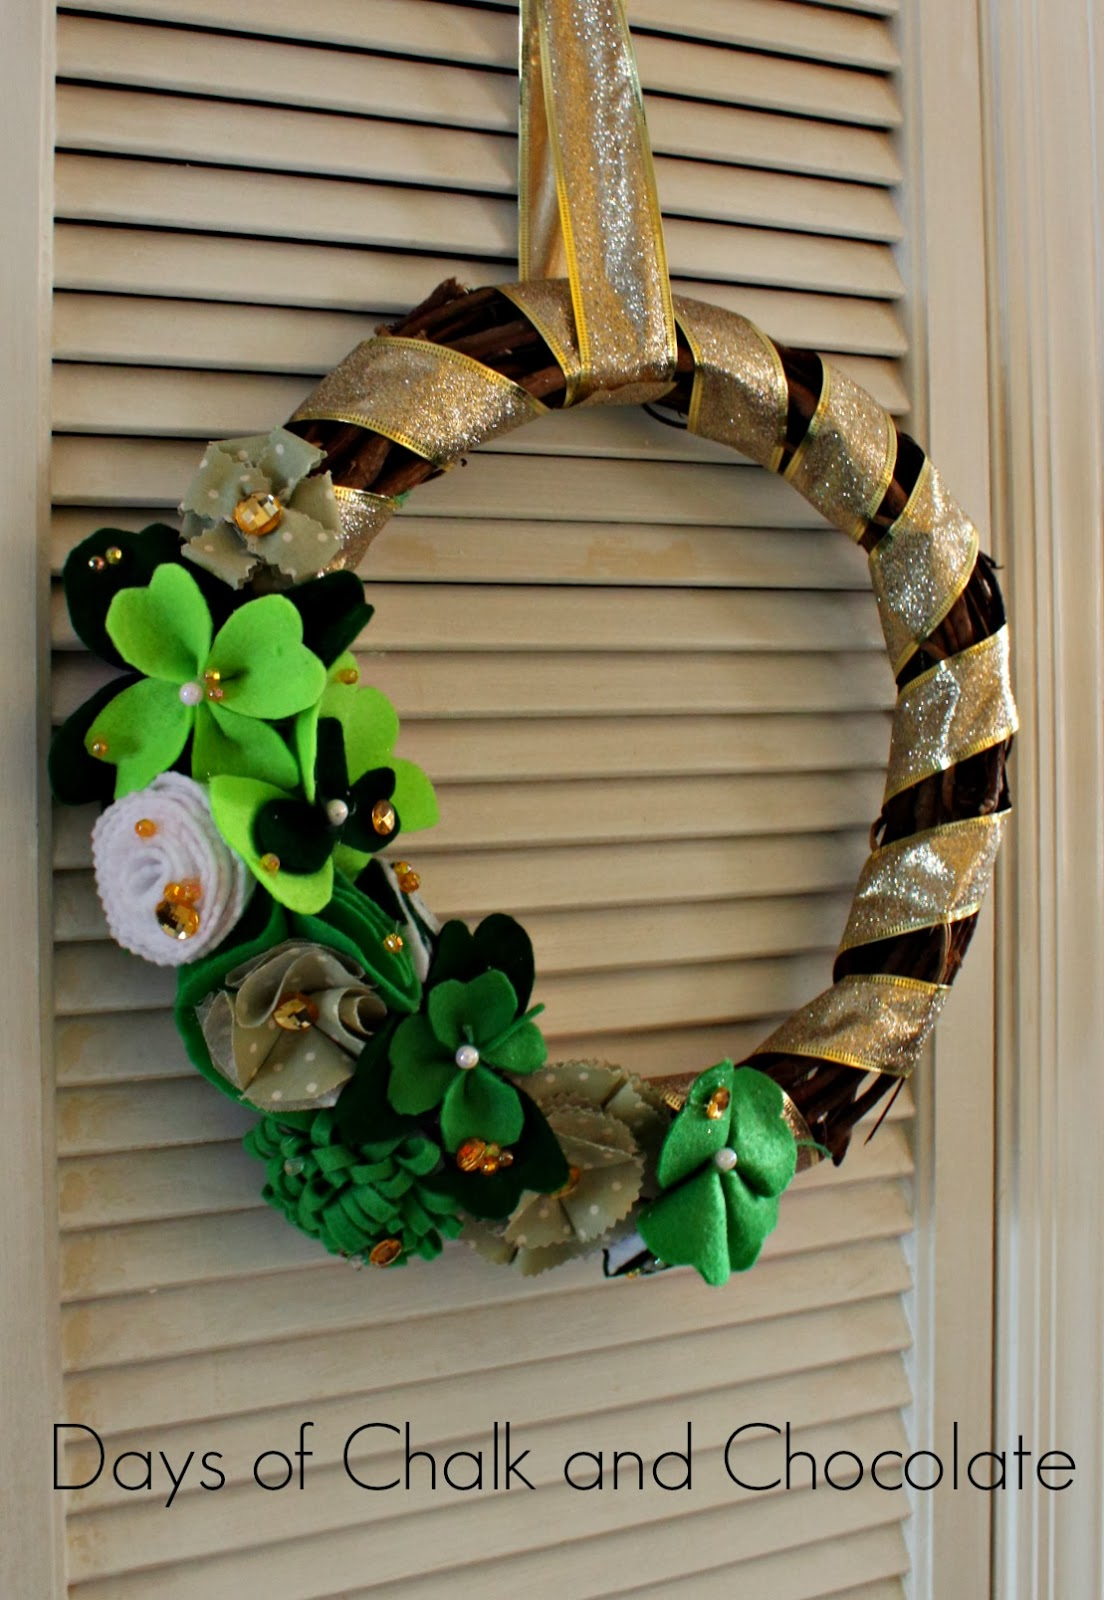 Days of Chalk and Chocolate St. Patrick's Day Wreath